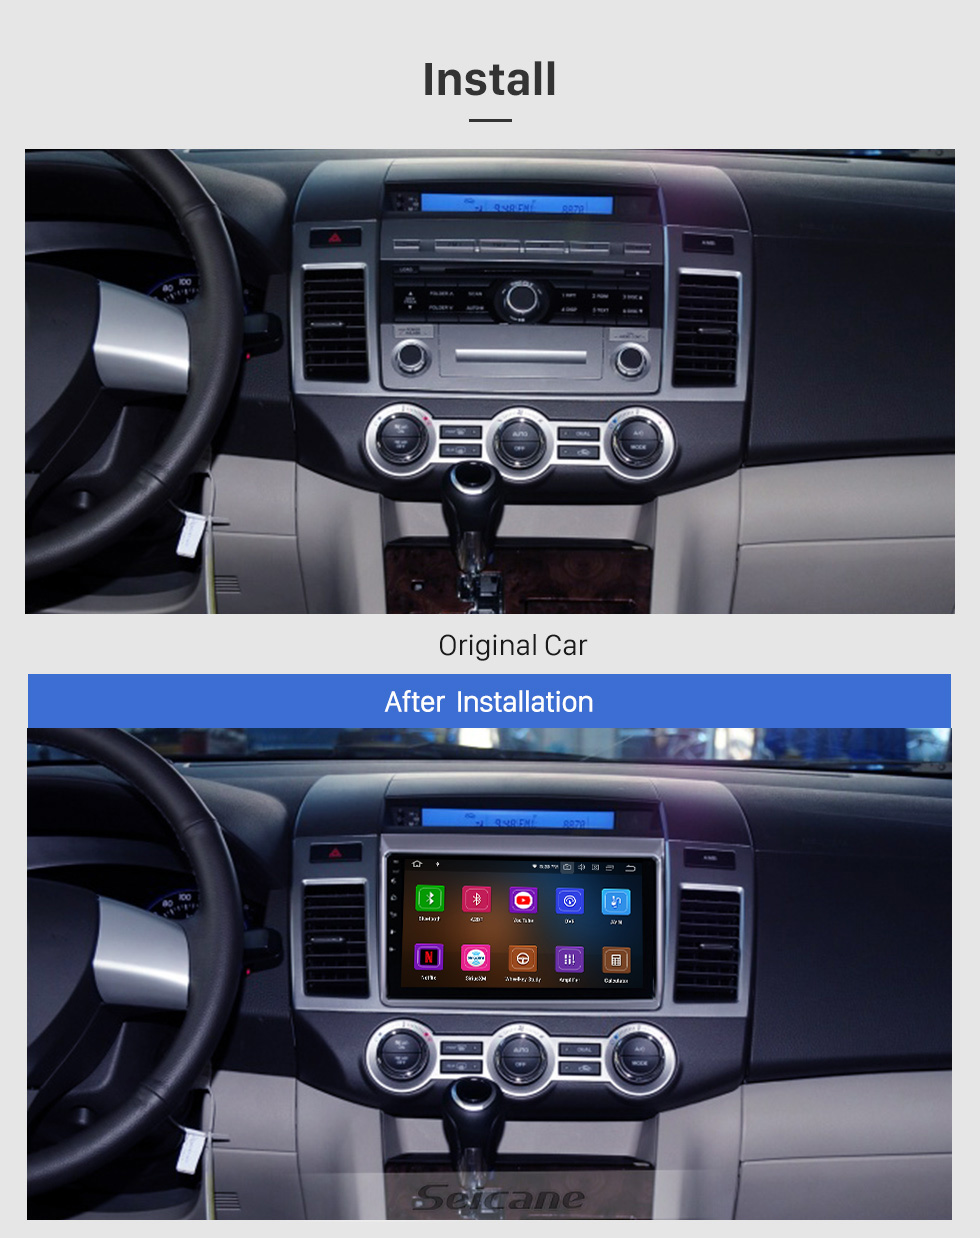 Seicane 9 inch For 2011 Mazda 8 Radio Android 10.0 GPS Navigation System with USB HD Touchscreen Bluetooth Carplay support OBD2 DSP